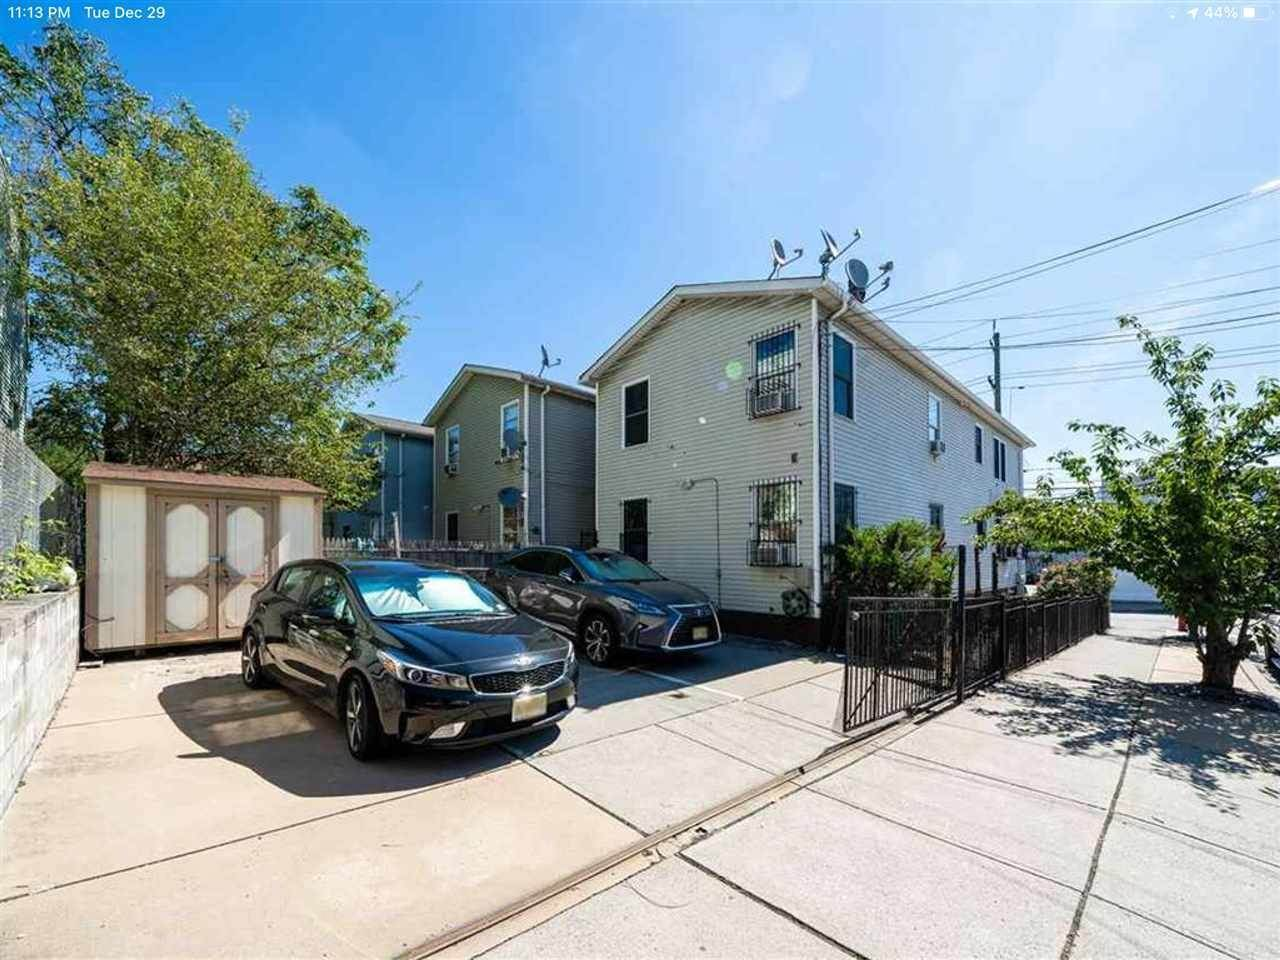 2. Two Family for Rent at 703 Garfield Avenue Jersey City, New Jersey 07305 United States